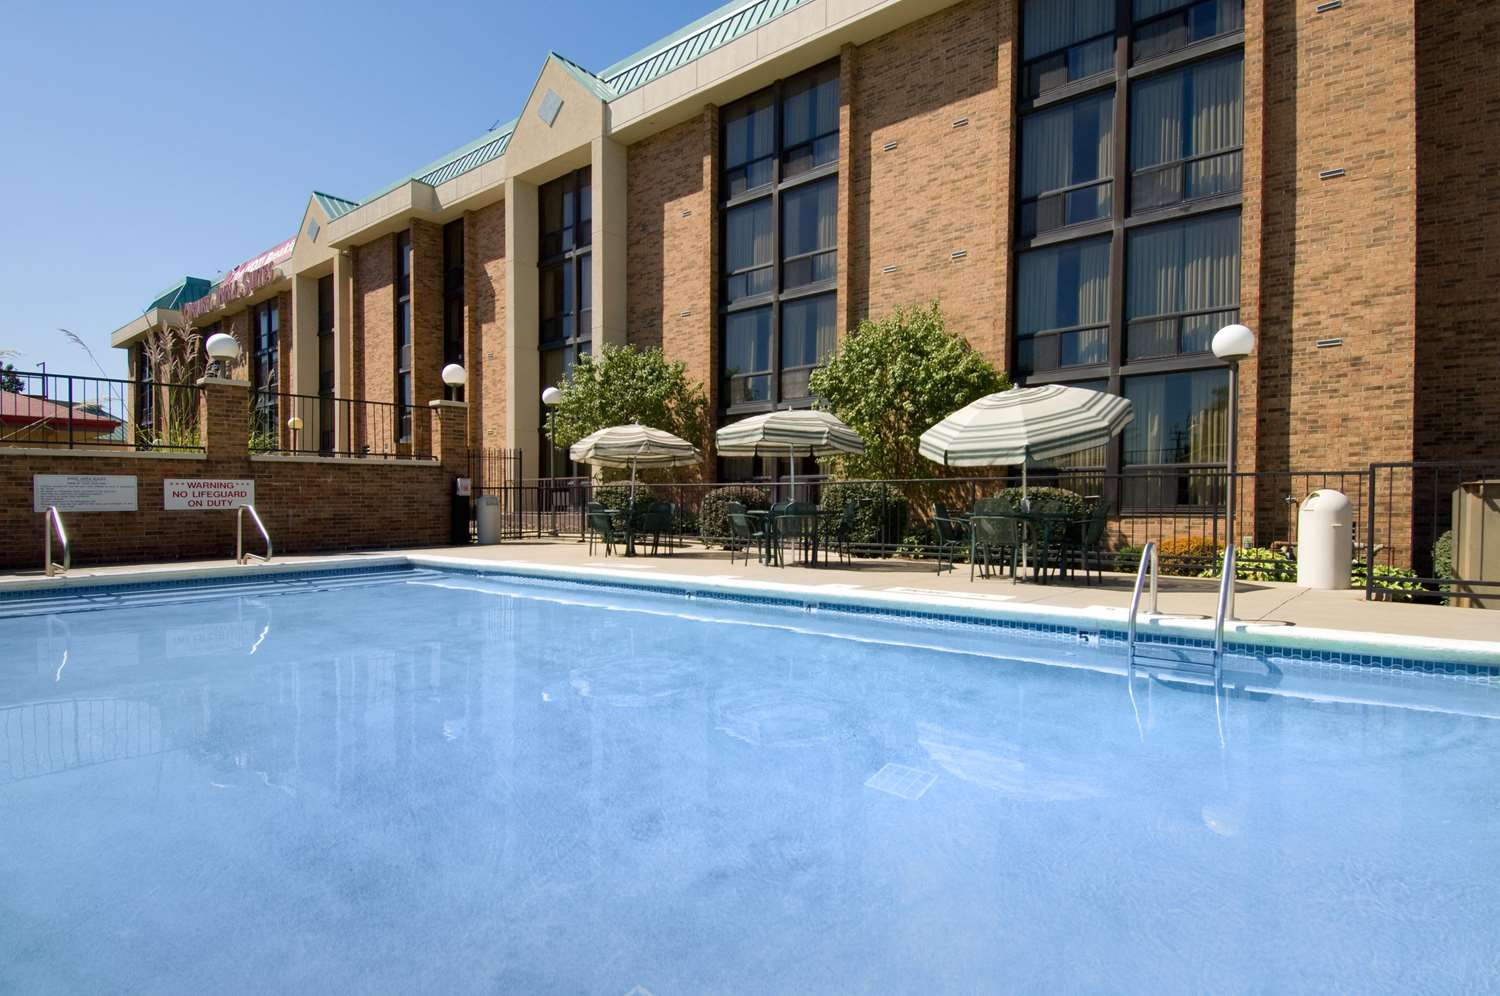 Pool - Drury Inn & Suites Stadium Kansas City